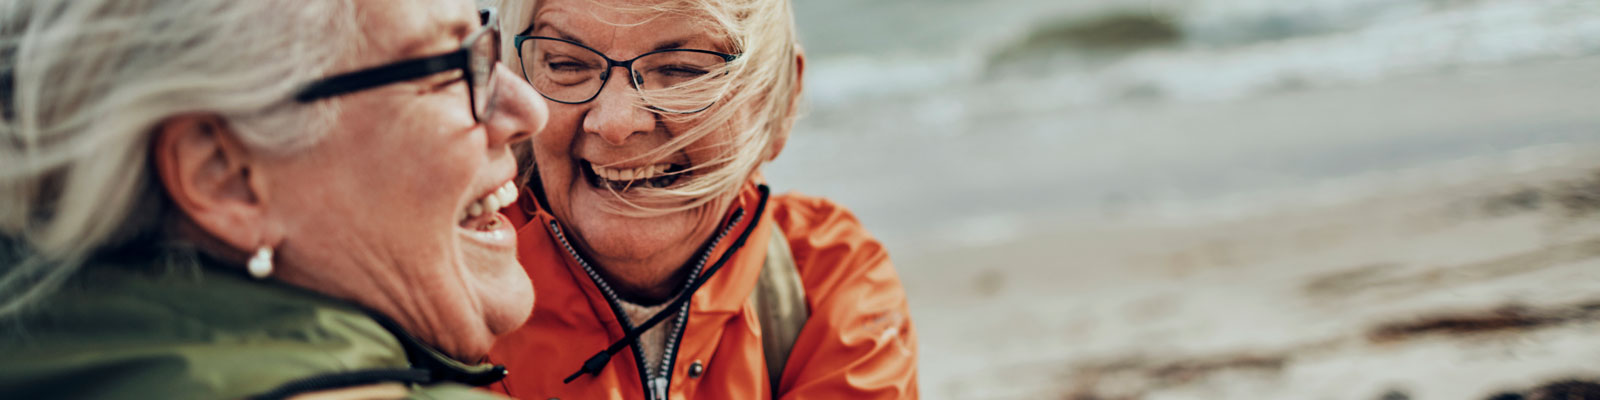 SA_Bachelor_BPS_16269_head_large.jpg